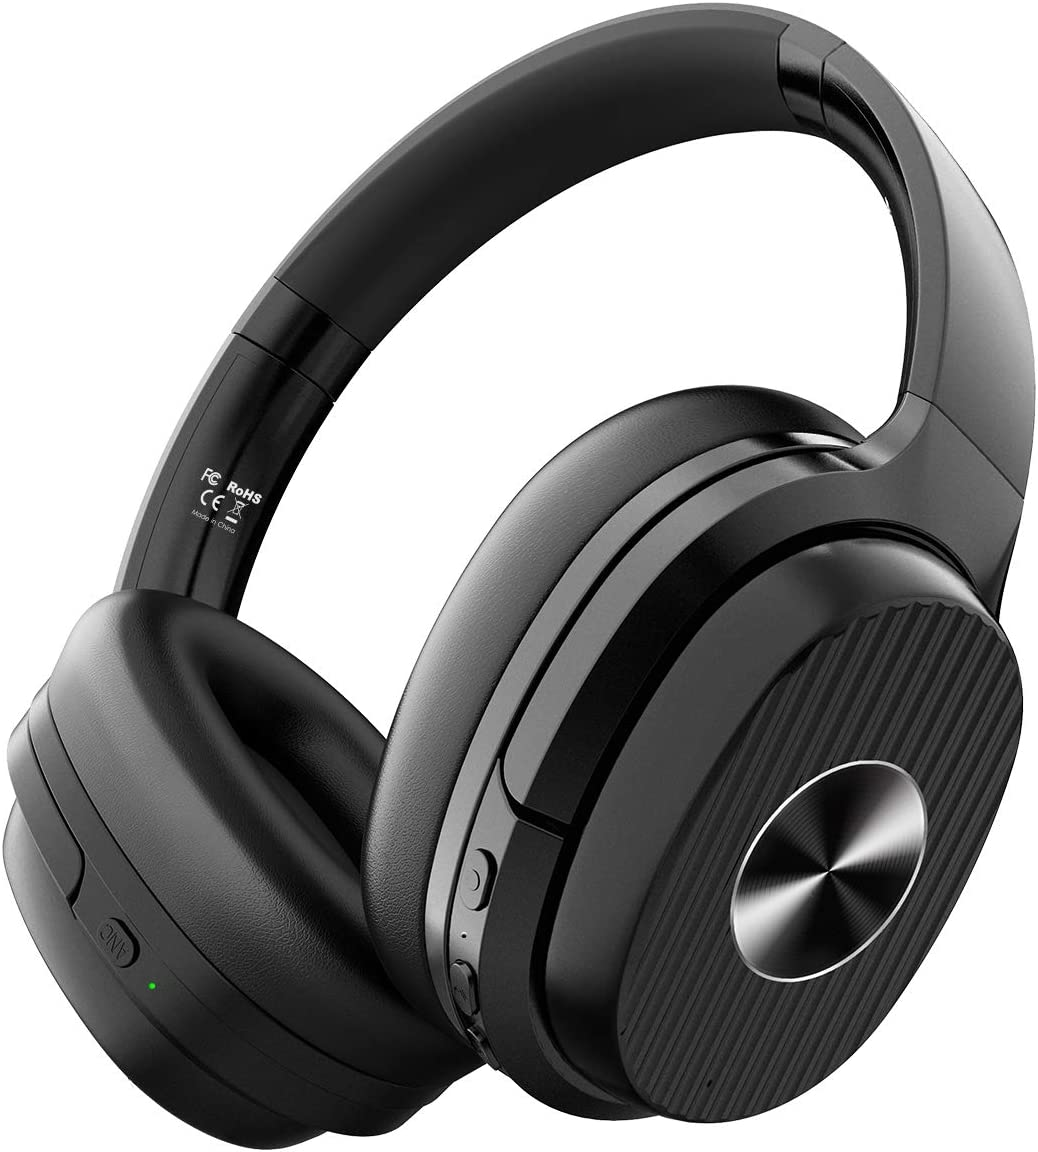 EKSA Bluetooth 5.0 ANC Over Ear Headphones, 60H Playtime Active Noise Cancelling Headsets with Mic and Hi-Fi Sound, Quick Charge, Wireless Headphones with Protein Earpads for Travel Airplane Laptop